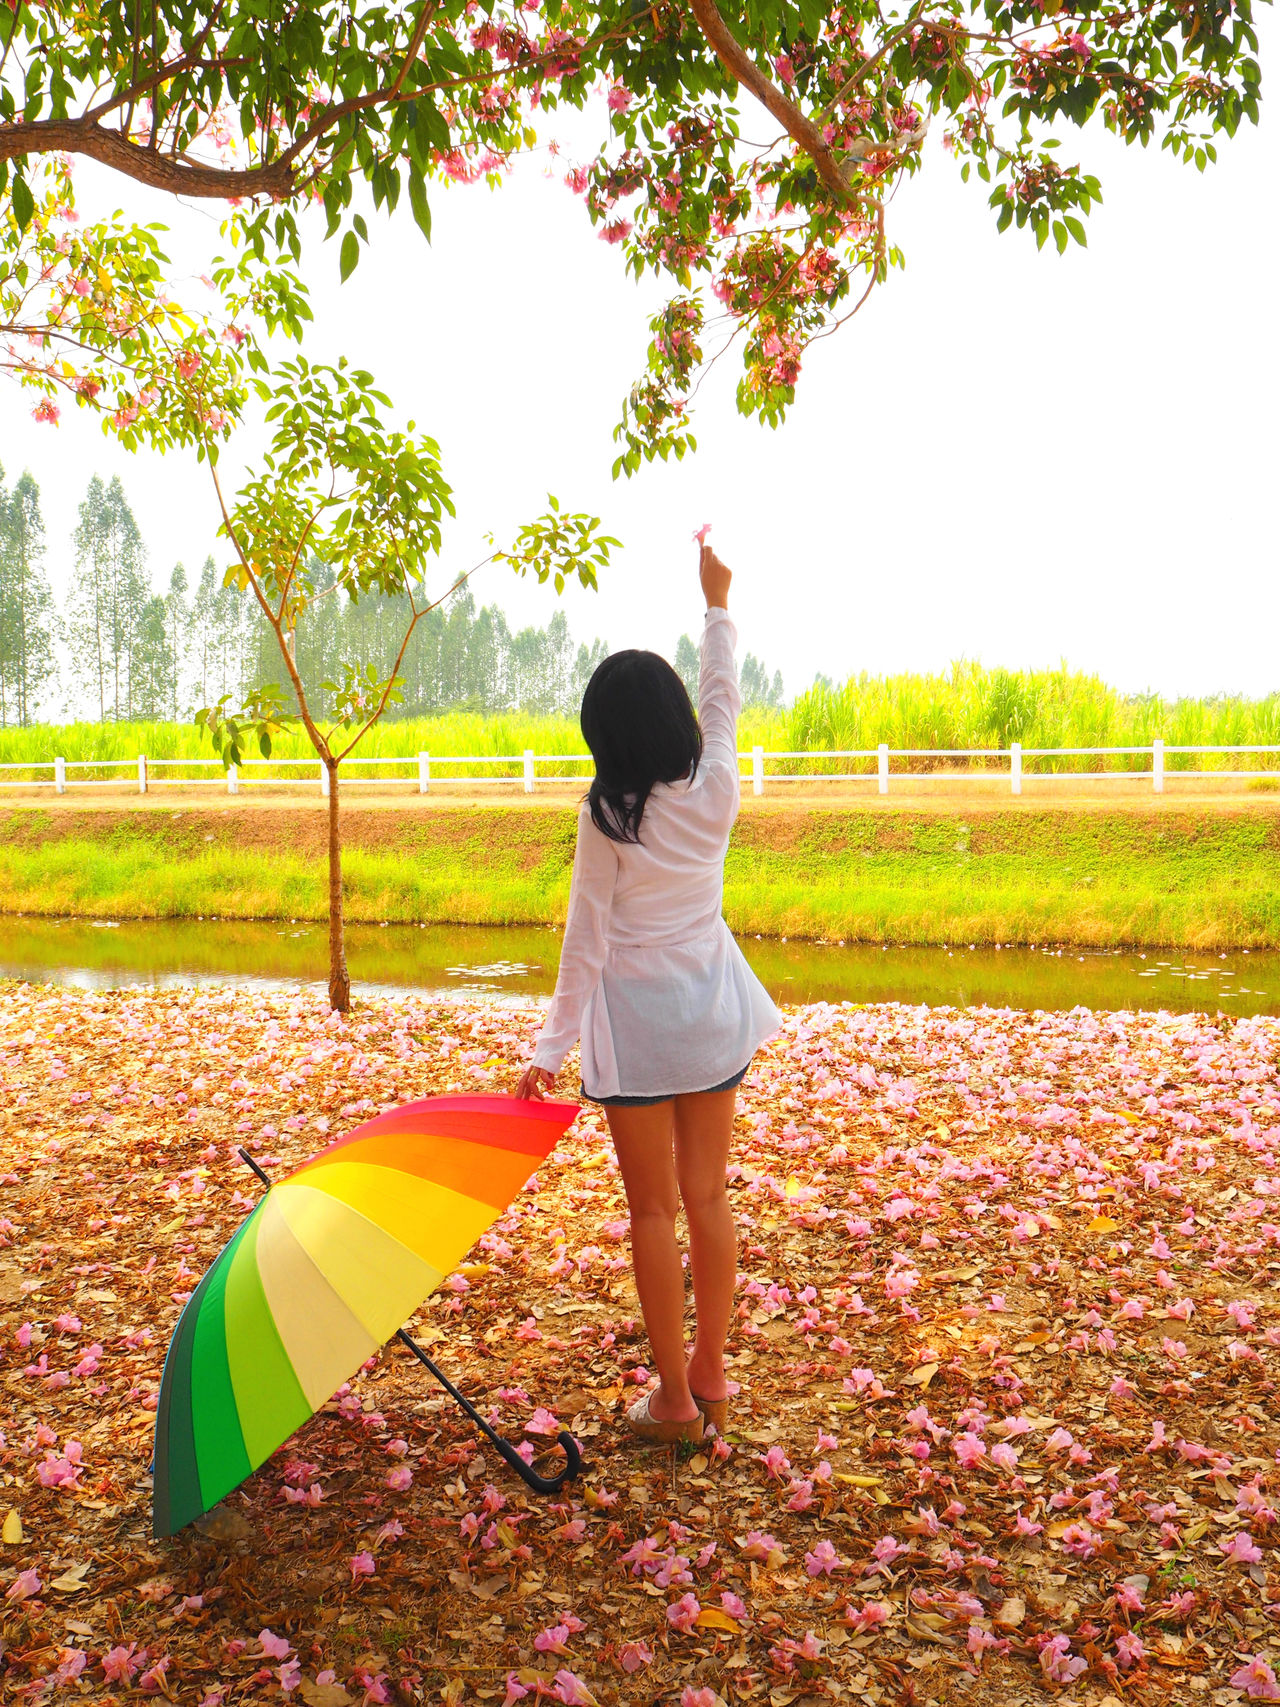 ☂Pink world☂ Feel The Journey Casual Clothing Exceptional Photographs The Great Outdoors With Adobe People Holding Colorsplash Leisure Activity lLifestyles Natural Natural Beauty Spotted In Thailand Pastel Power The Great Outdoors - 2016 EyeEm Awards Pink Color Travel Natural Light Portrait Tadaa Community Everything In Its Place Umbrella The Portraitist - 2016 EyeEm Awards Let Your Hair Down Yeah Springtime! Young Women Uniqueness Women Around The World Millennial Pink